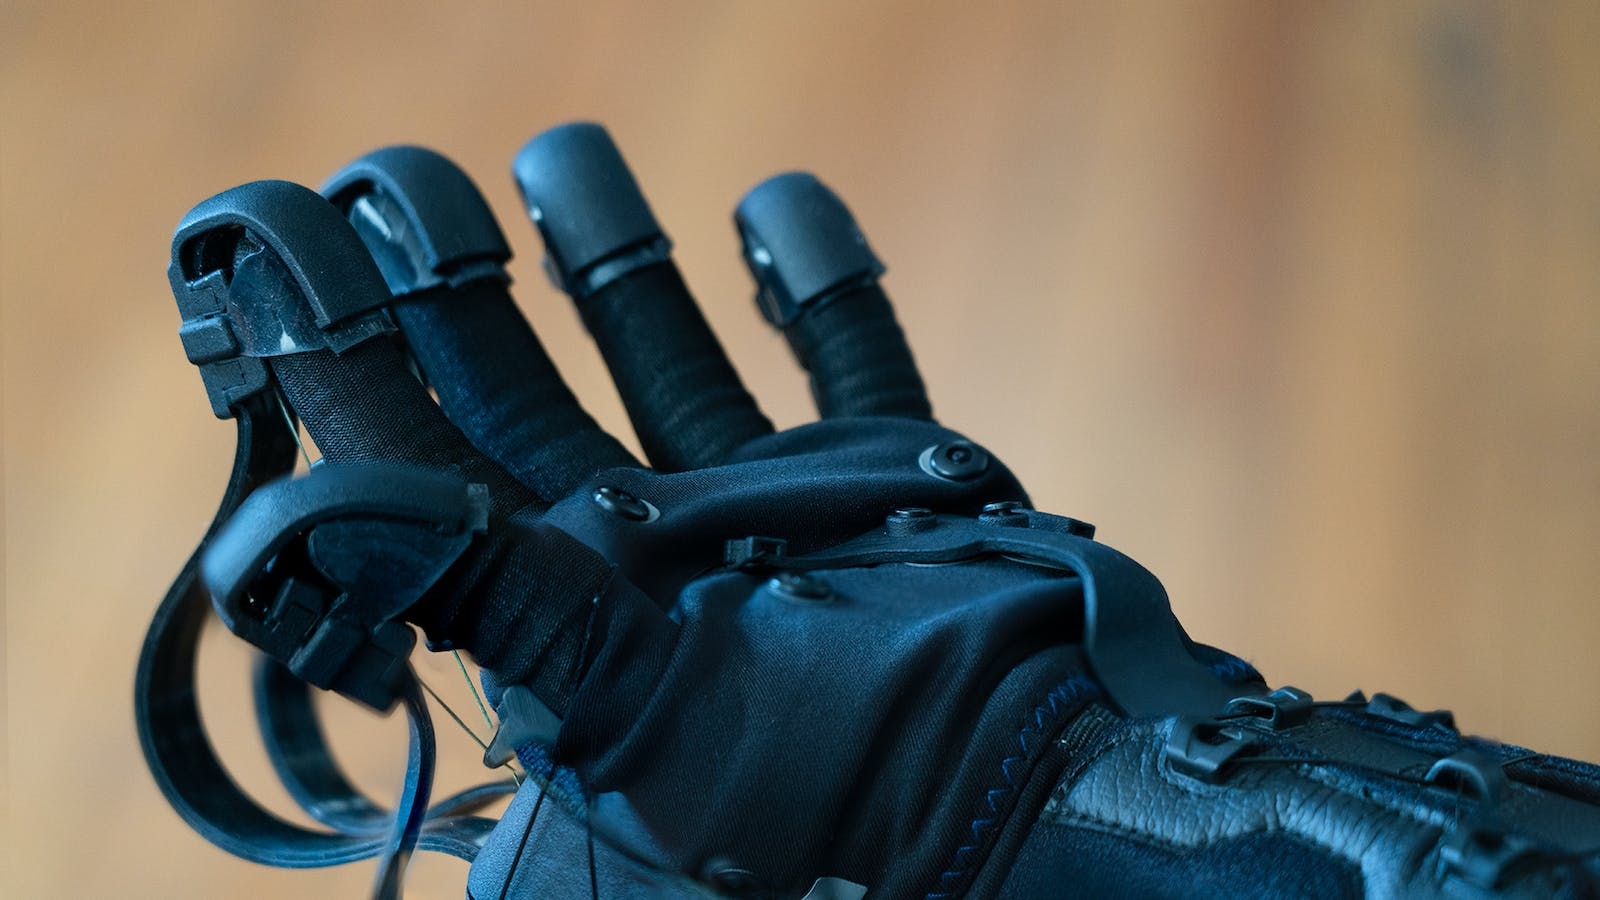 A HaptX virtual reality glove designed to emulate realistic touch. Photo by HaptX